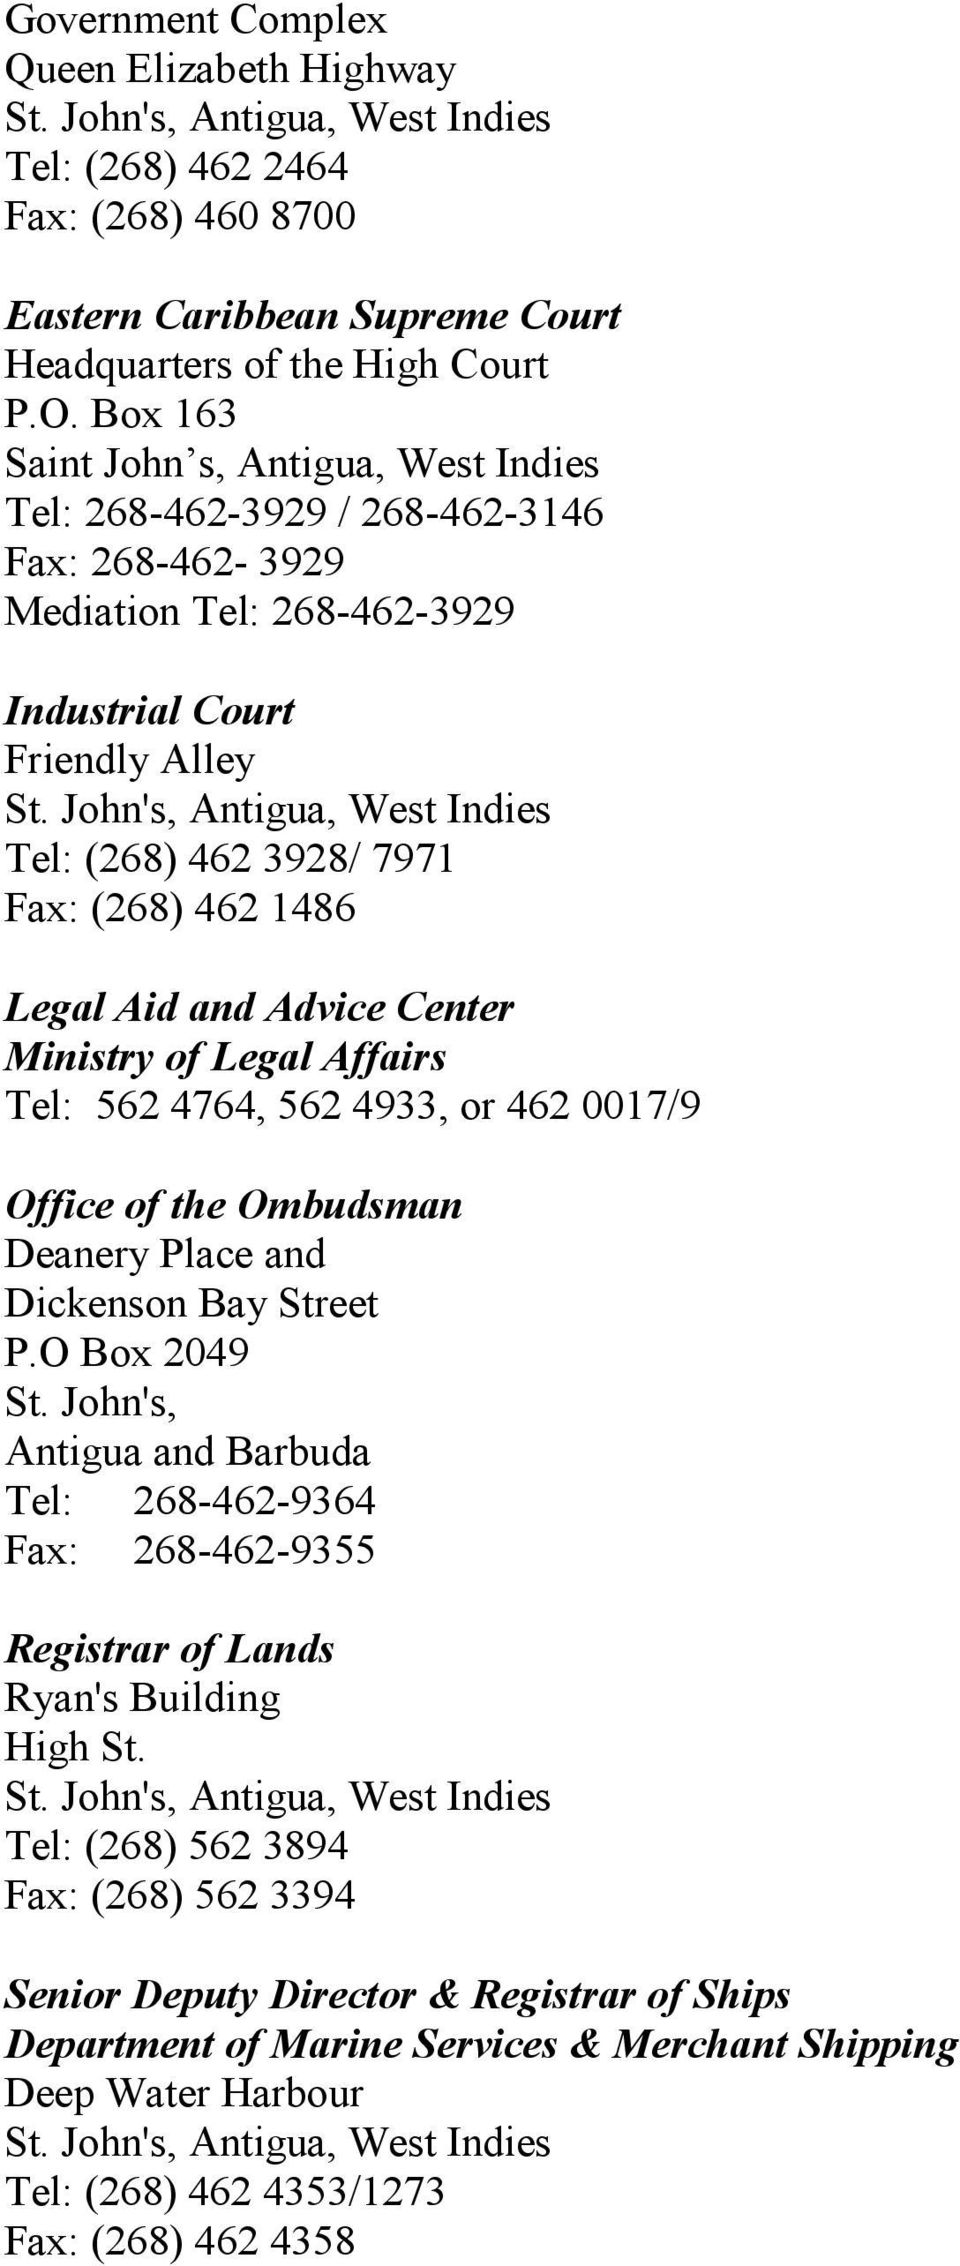 John's, Antigua, West Indies Tel: (268) 462 3928/ 7971 Fax: (268) 462 1486 Legal Aid and Advice Center Ministry of Legal Affairs Tel: 562 4764, 562 4933, or 462 0017/9 Office of the Ombudsman Deanery